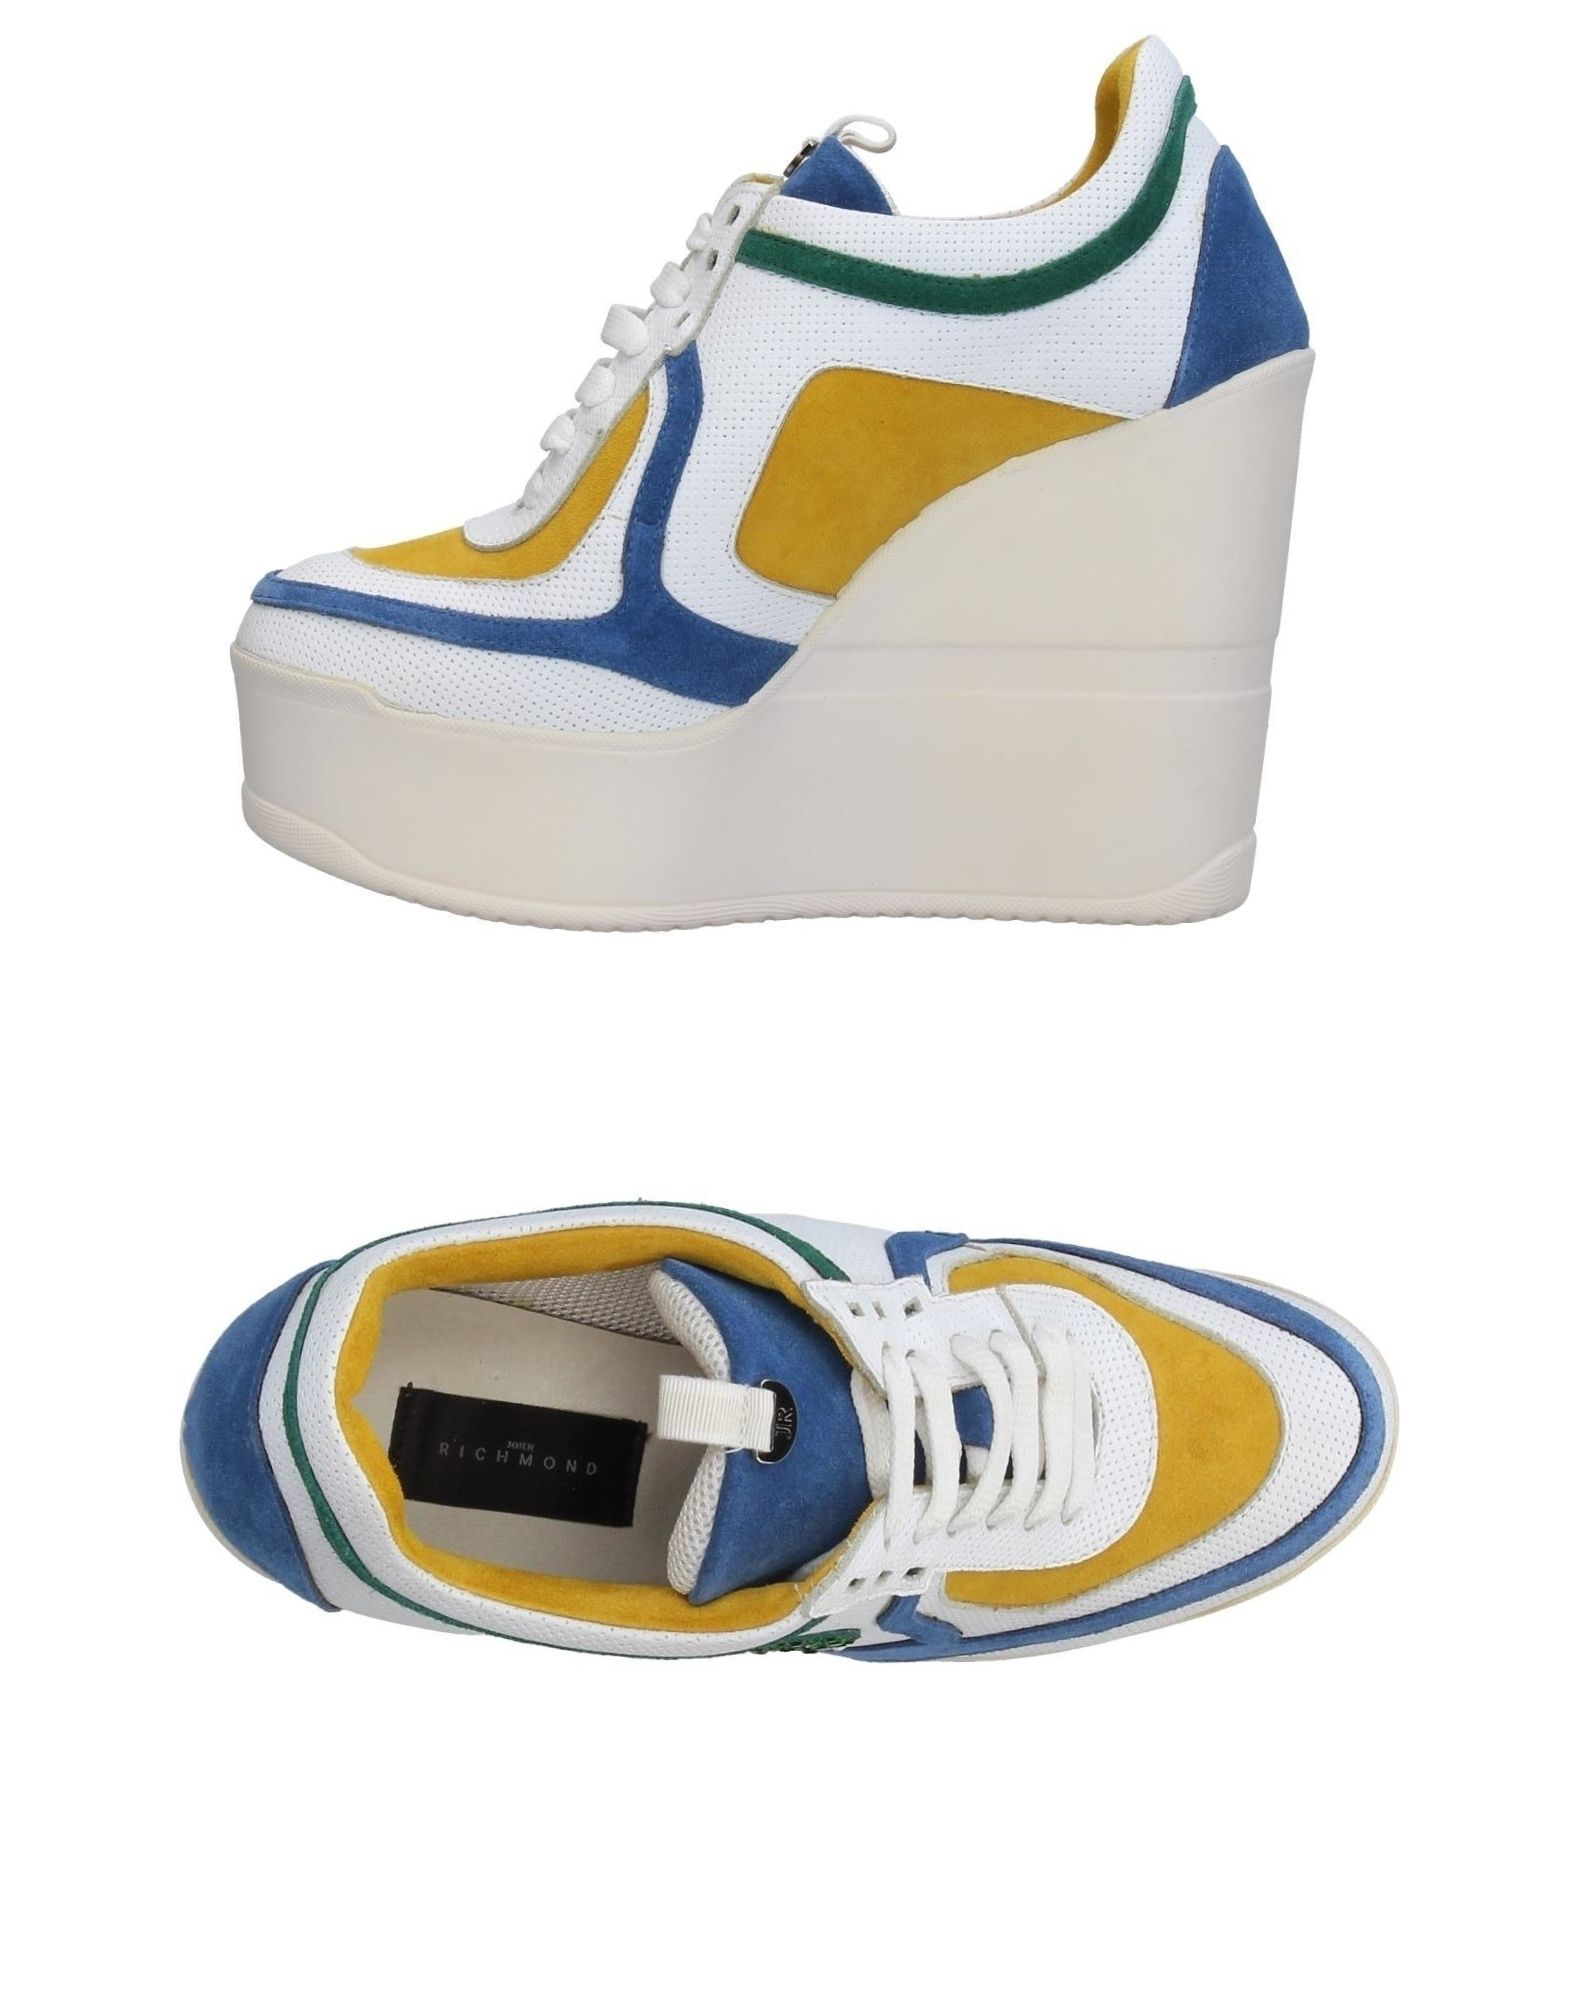 Sneakers John Richmond Donna - Acquista online su